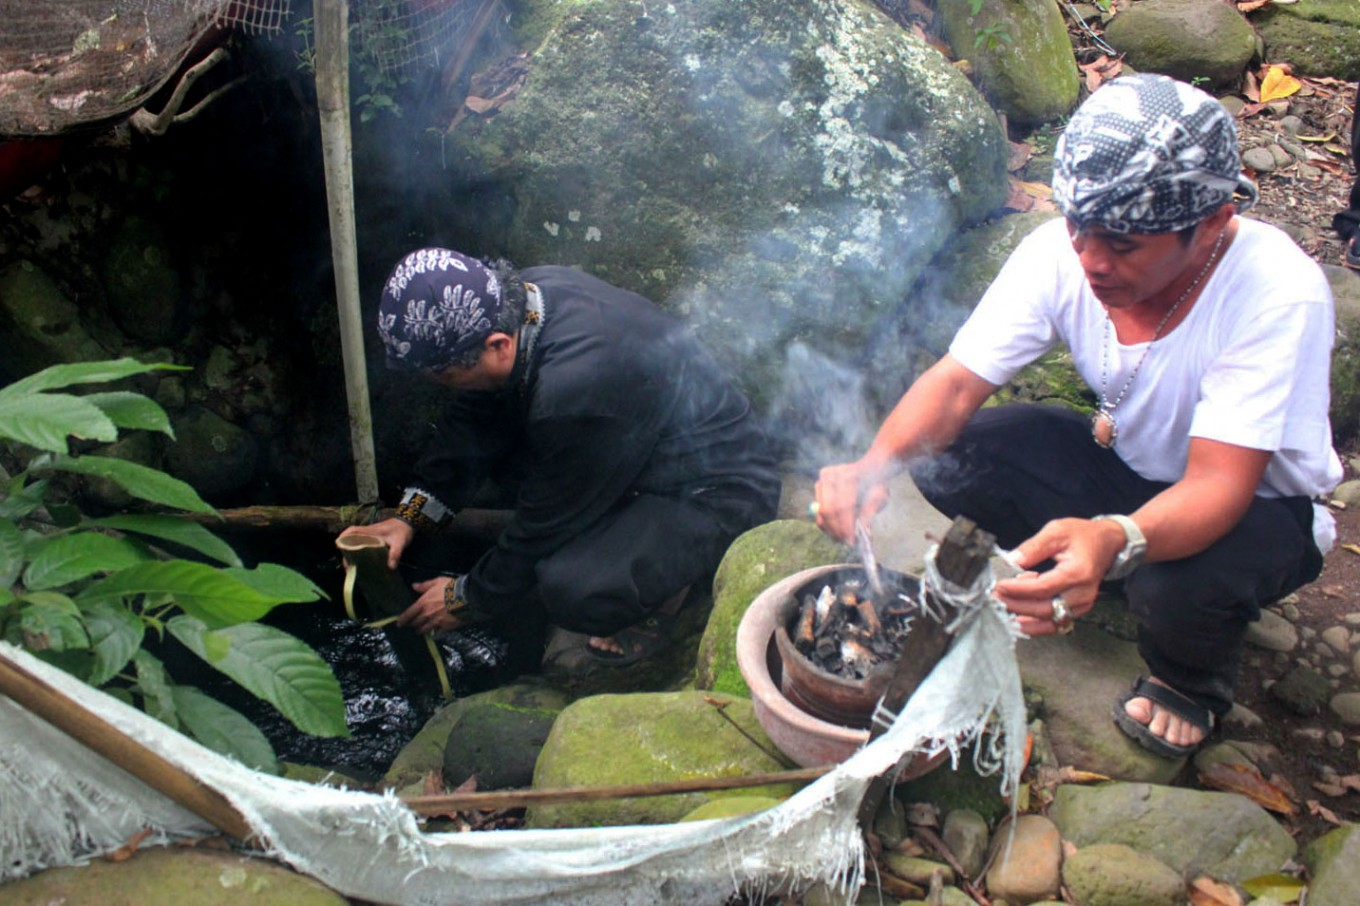 Two community leaders, locally known as kokolot, take water from a spring in the Sindangbarang traditional kampung, Tamansari district, Bogor, during the Seren Taun Guru Bumi ceremony. JP/Theresia Sufa